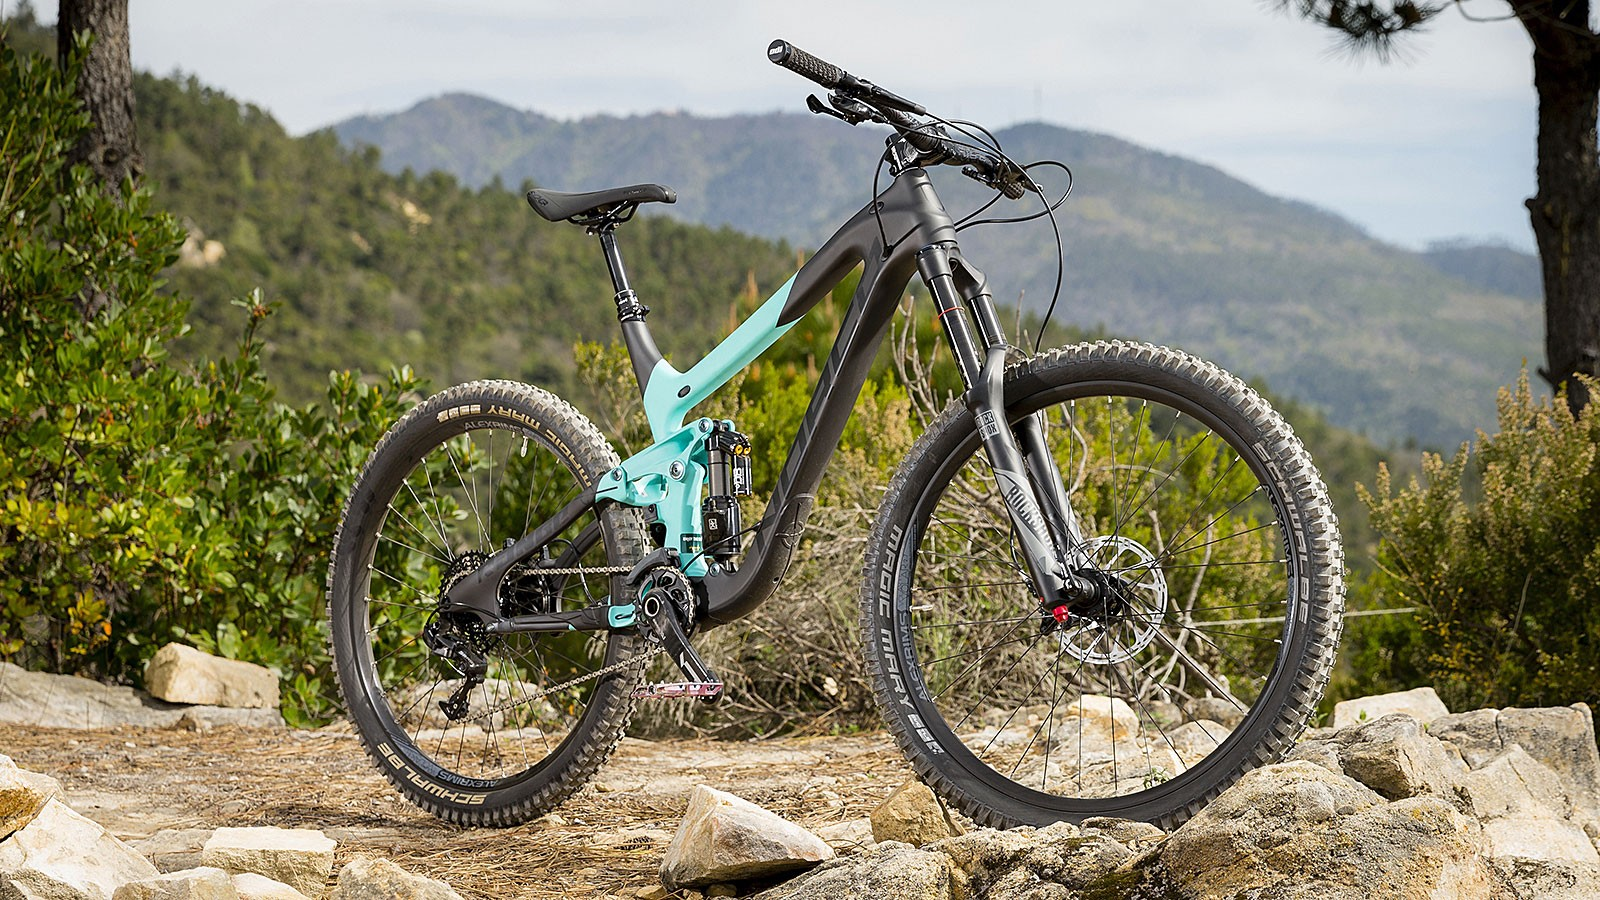 Norco's Range C7.2 has a pleasingly simple and reassuringly solid profile